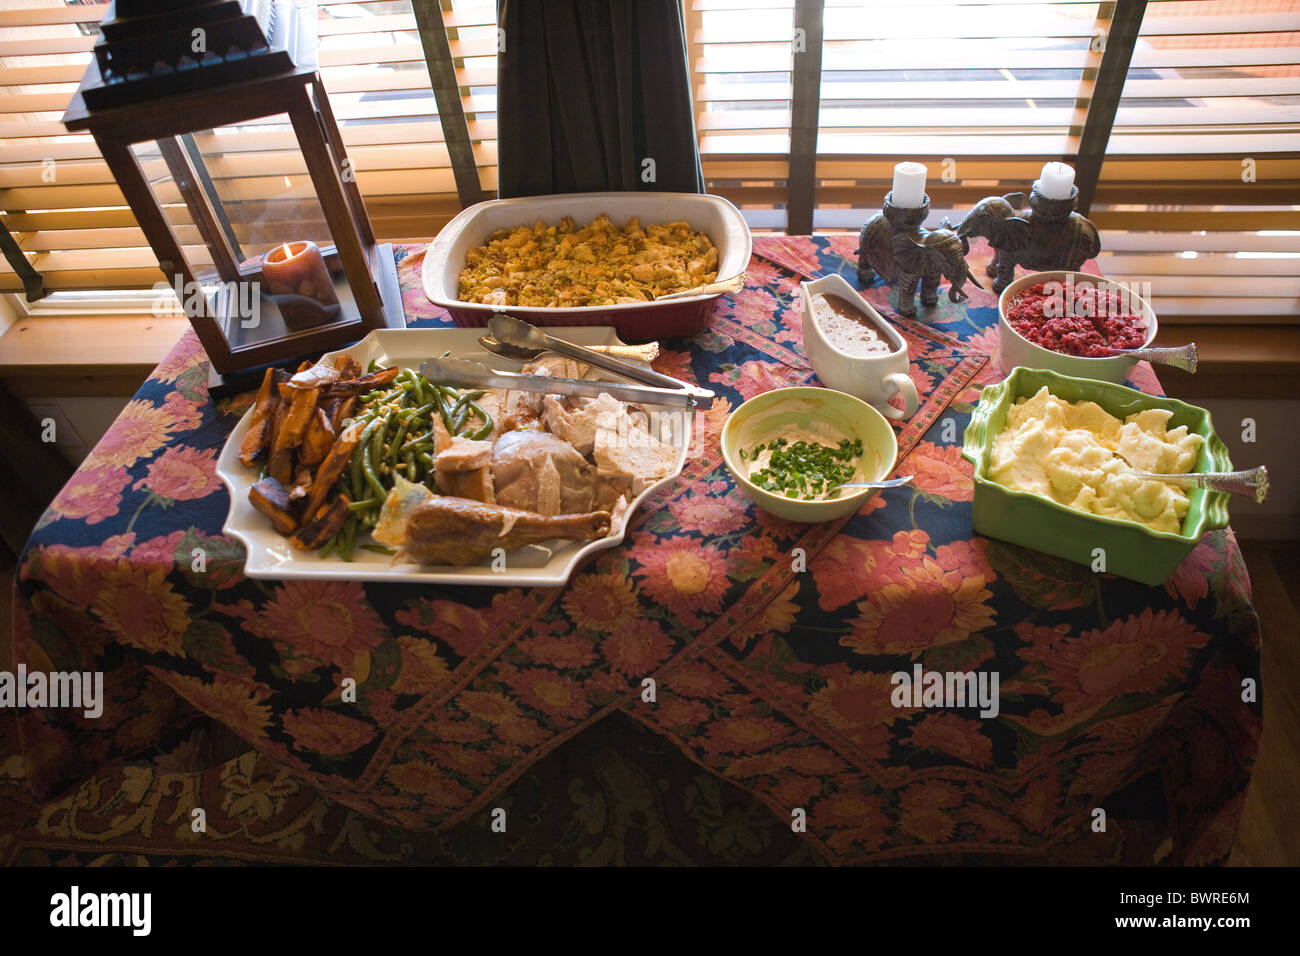 American table setting - American Holiday Meal Table Setting Self Serve Buffet Style Turkey Mashed Potatoes